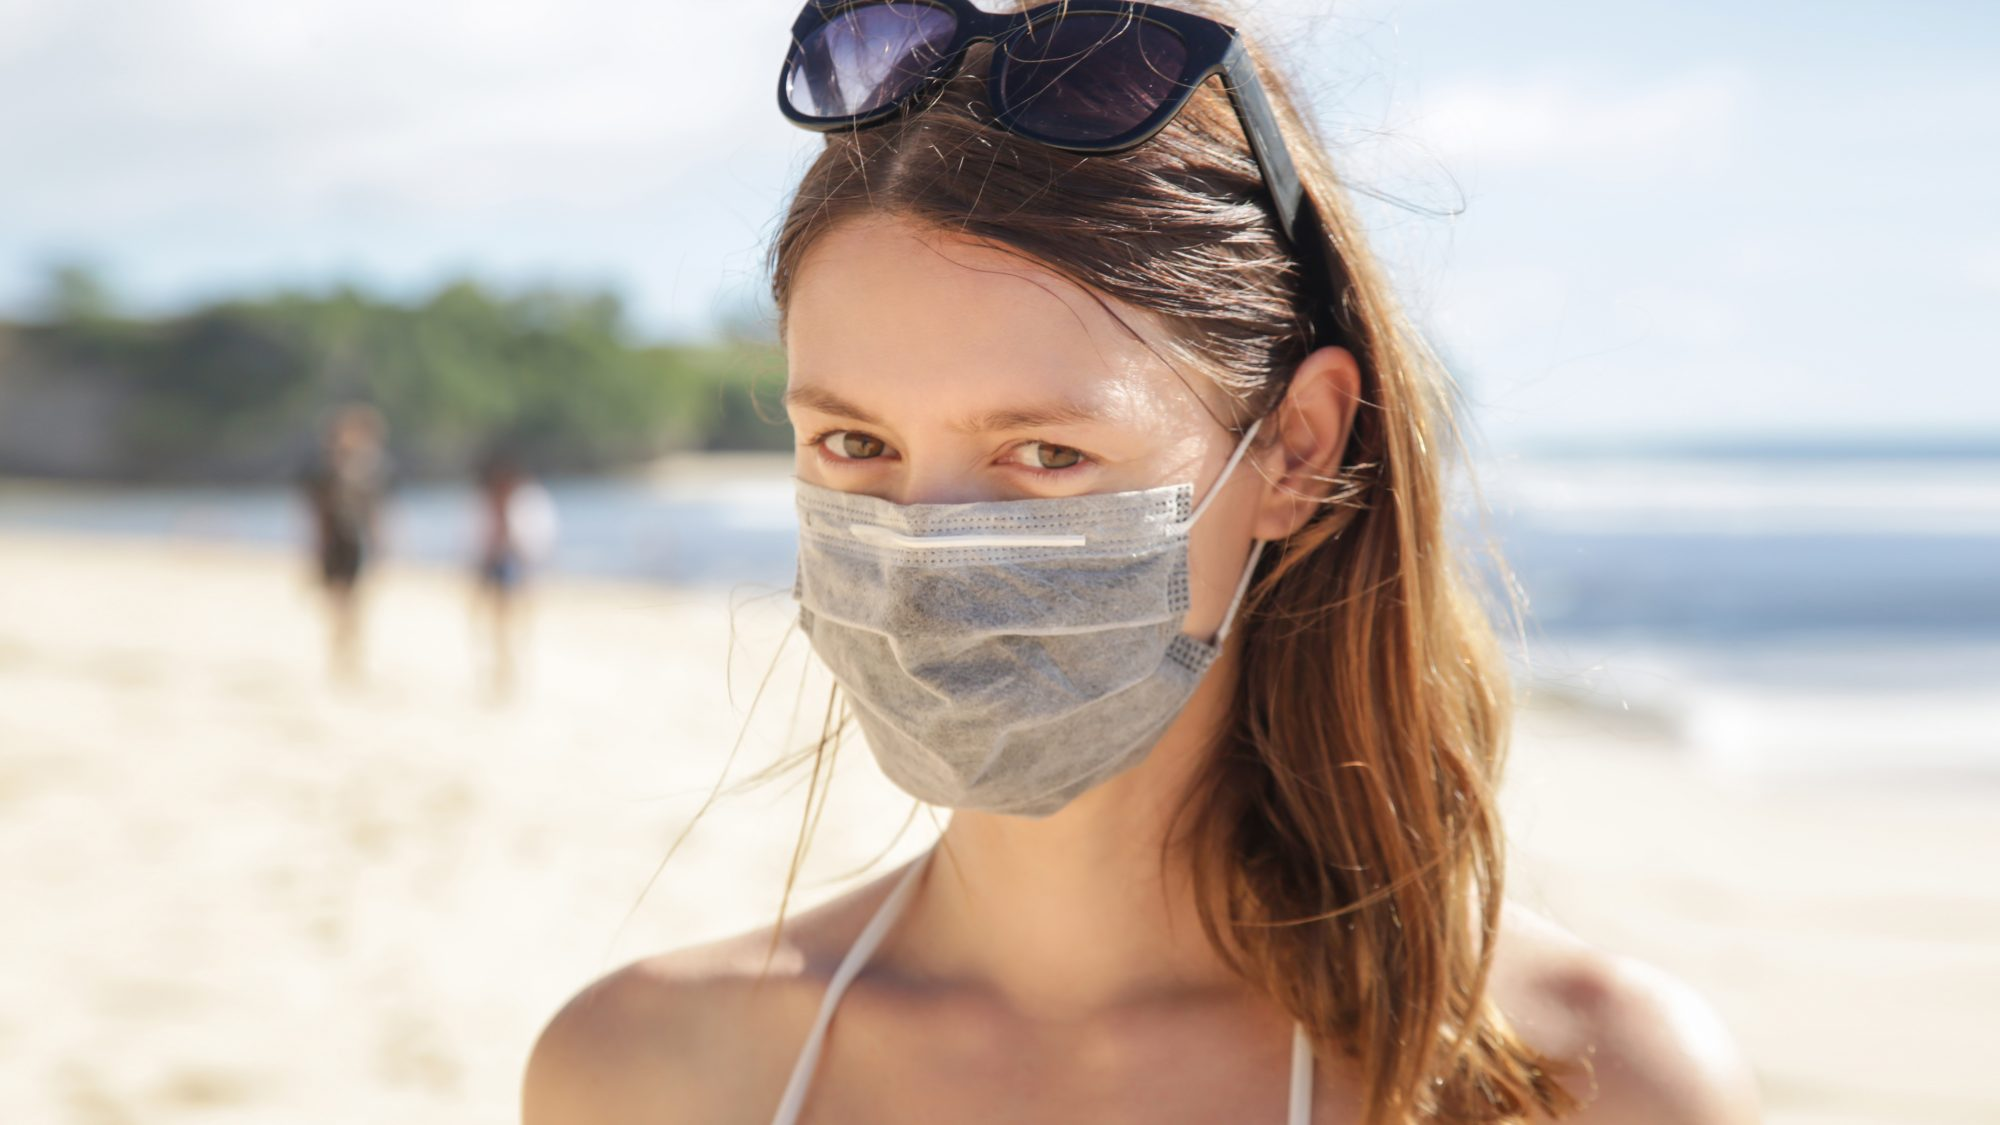 Woman wearing protective face mask on the beach. Summer vacation after Coronavirus pandemic crisis.